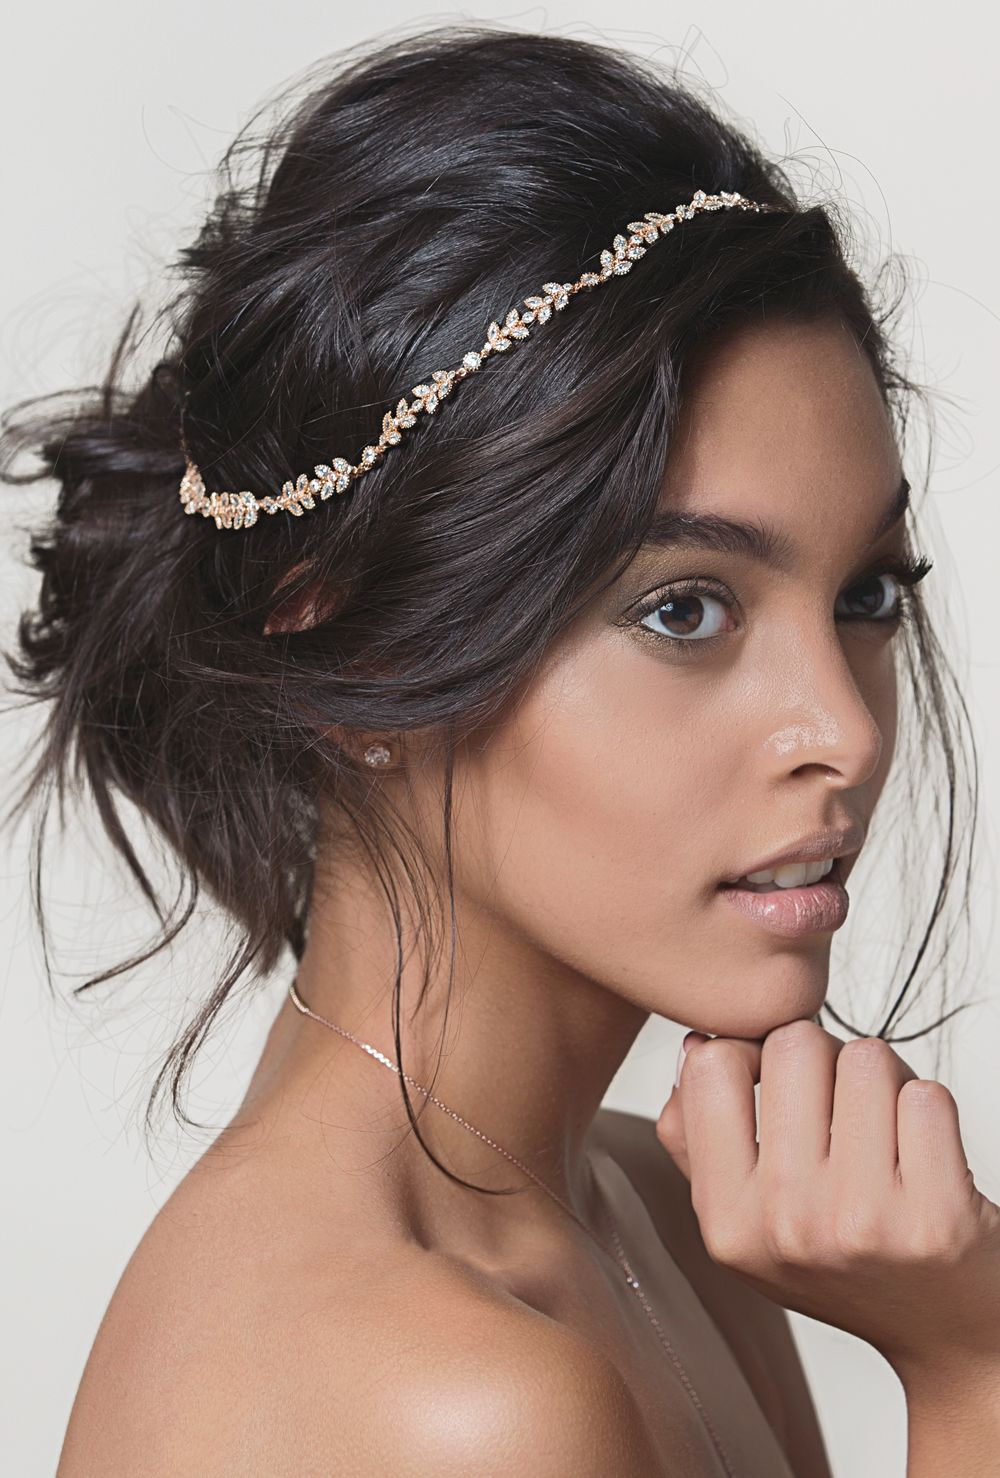 monet floral headpiece with ribbon tie | rose gold bridal jewelry